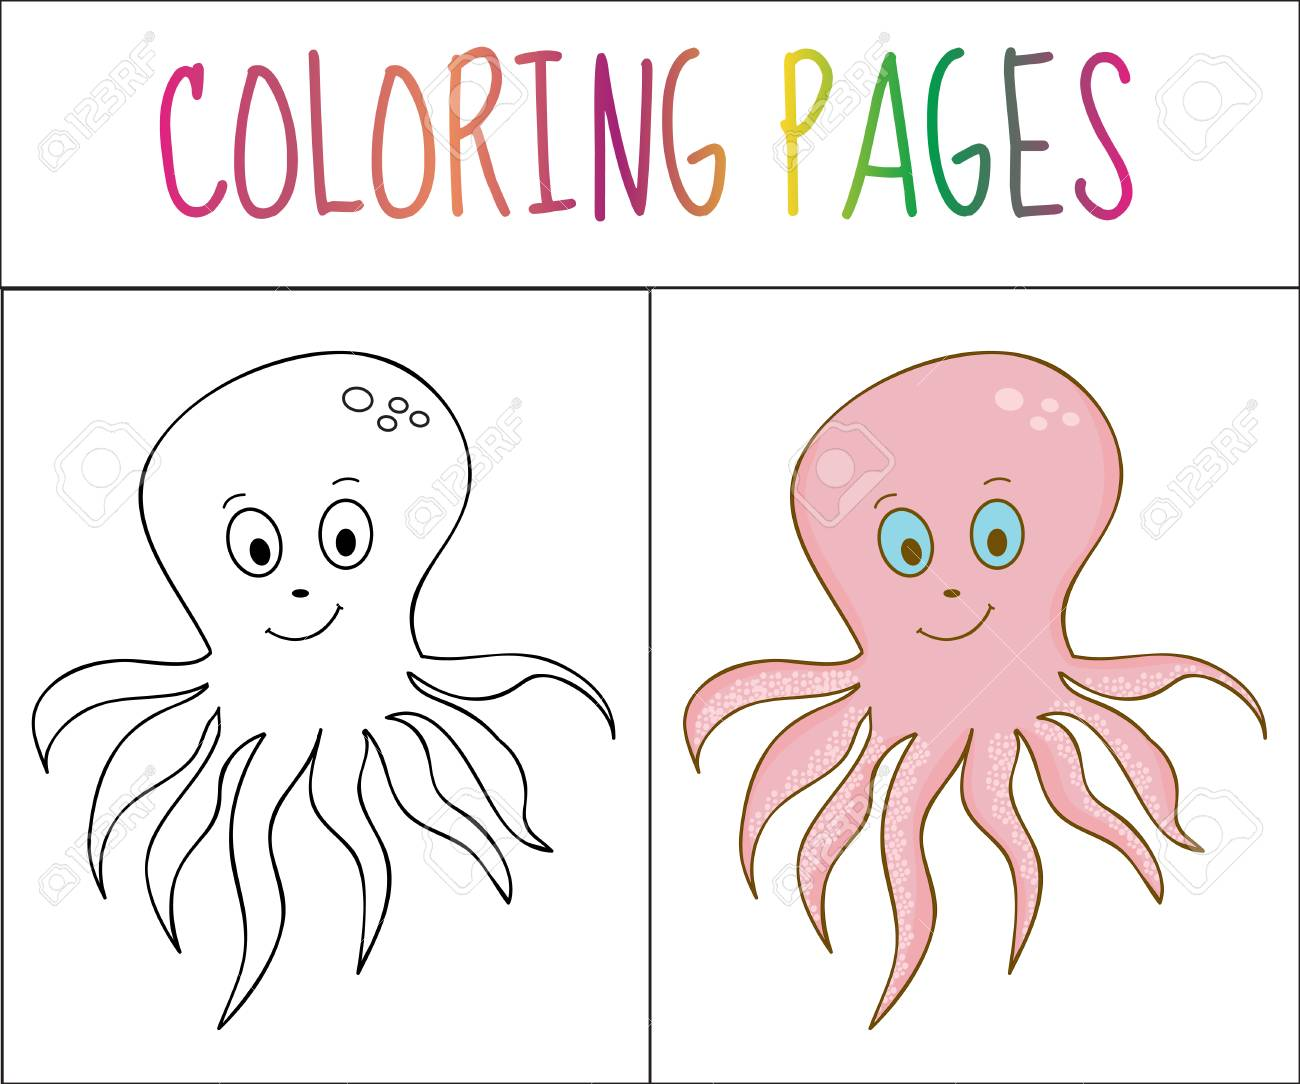 Coloring Book Page Octopus Sketch And Color Version Coloring Royalty Free Cliparts Vectors And Stock Illustration Image 61215901